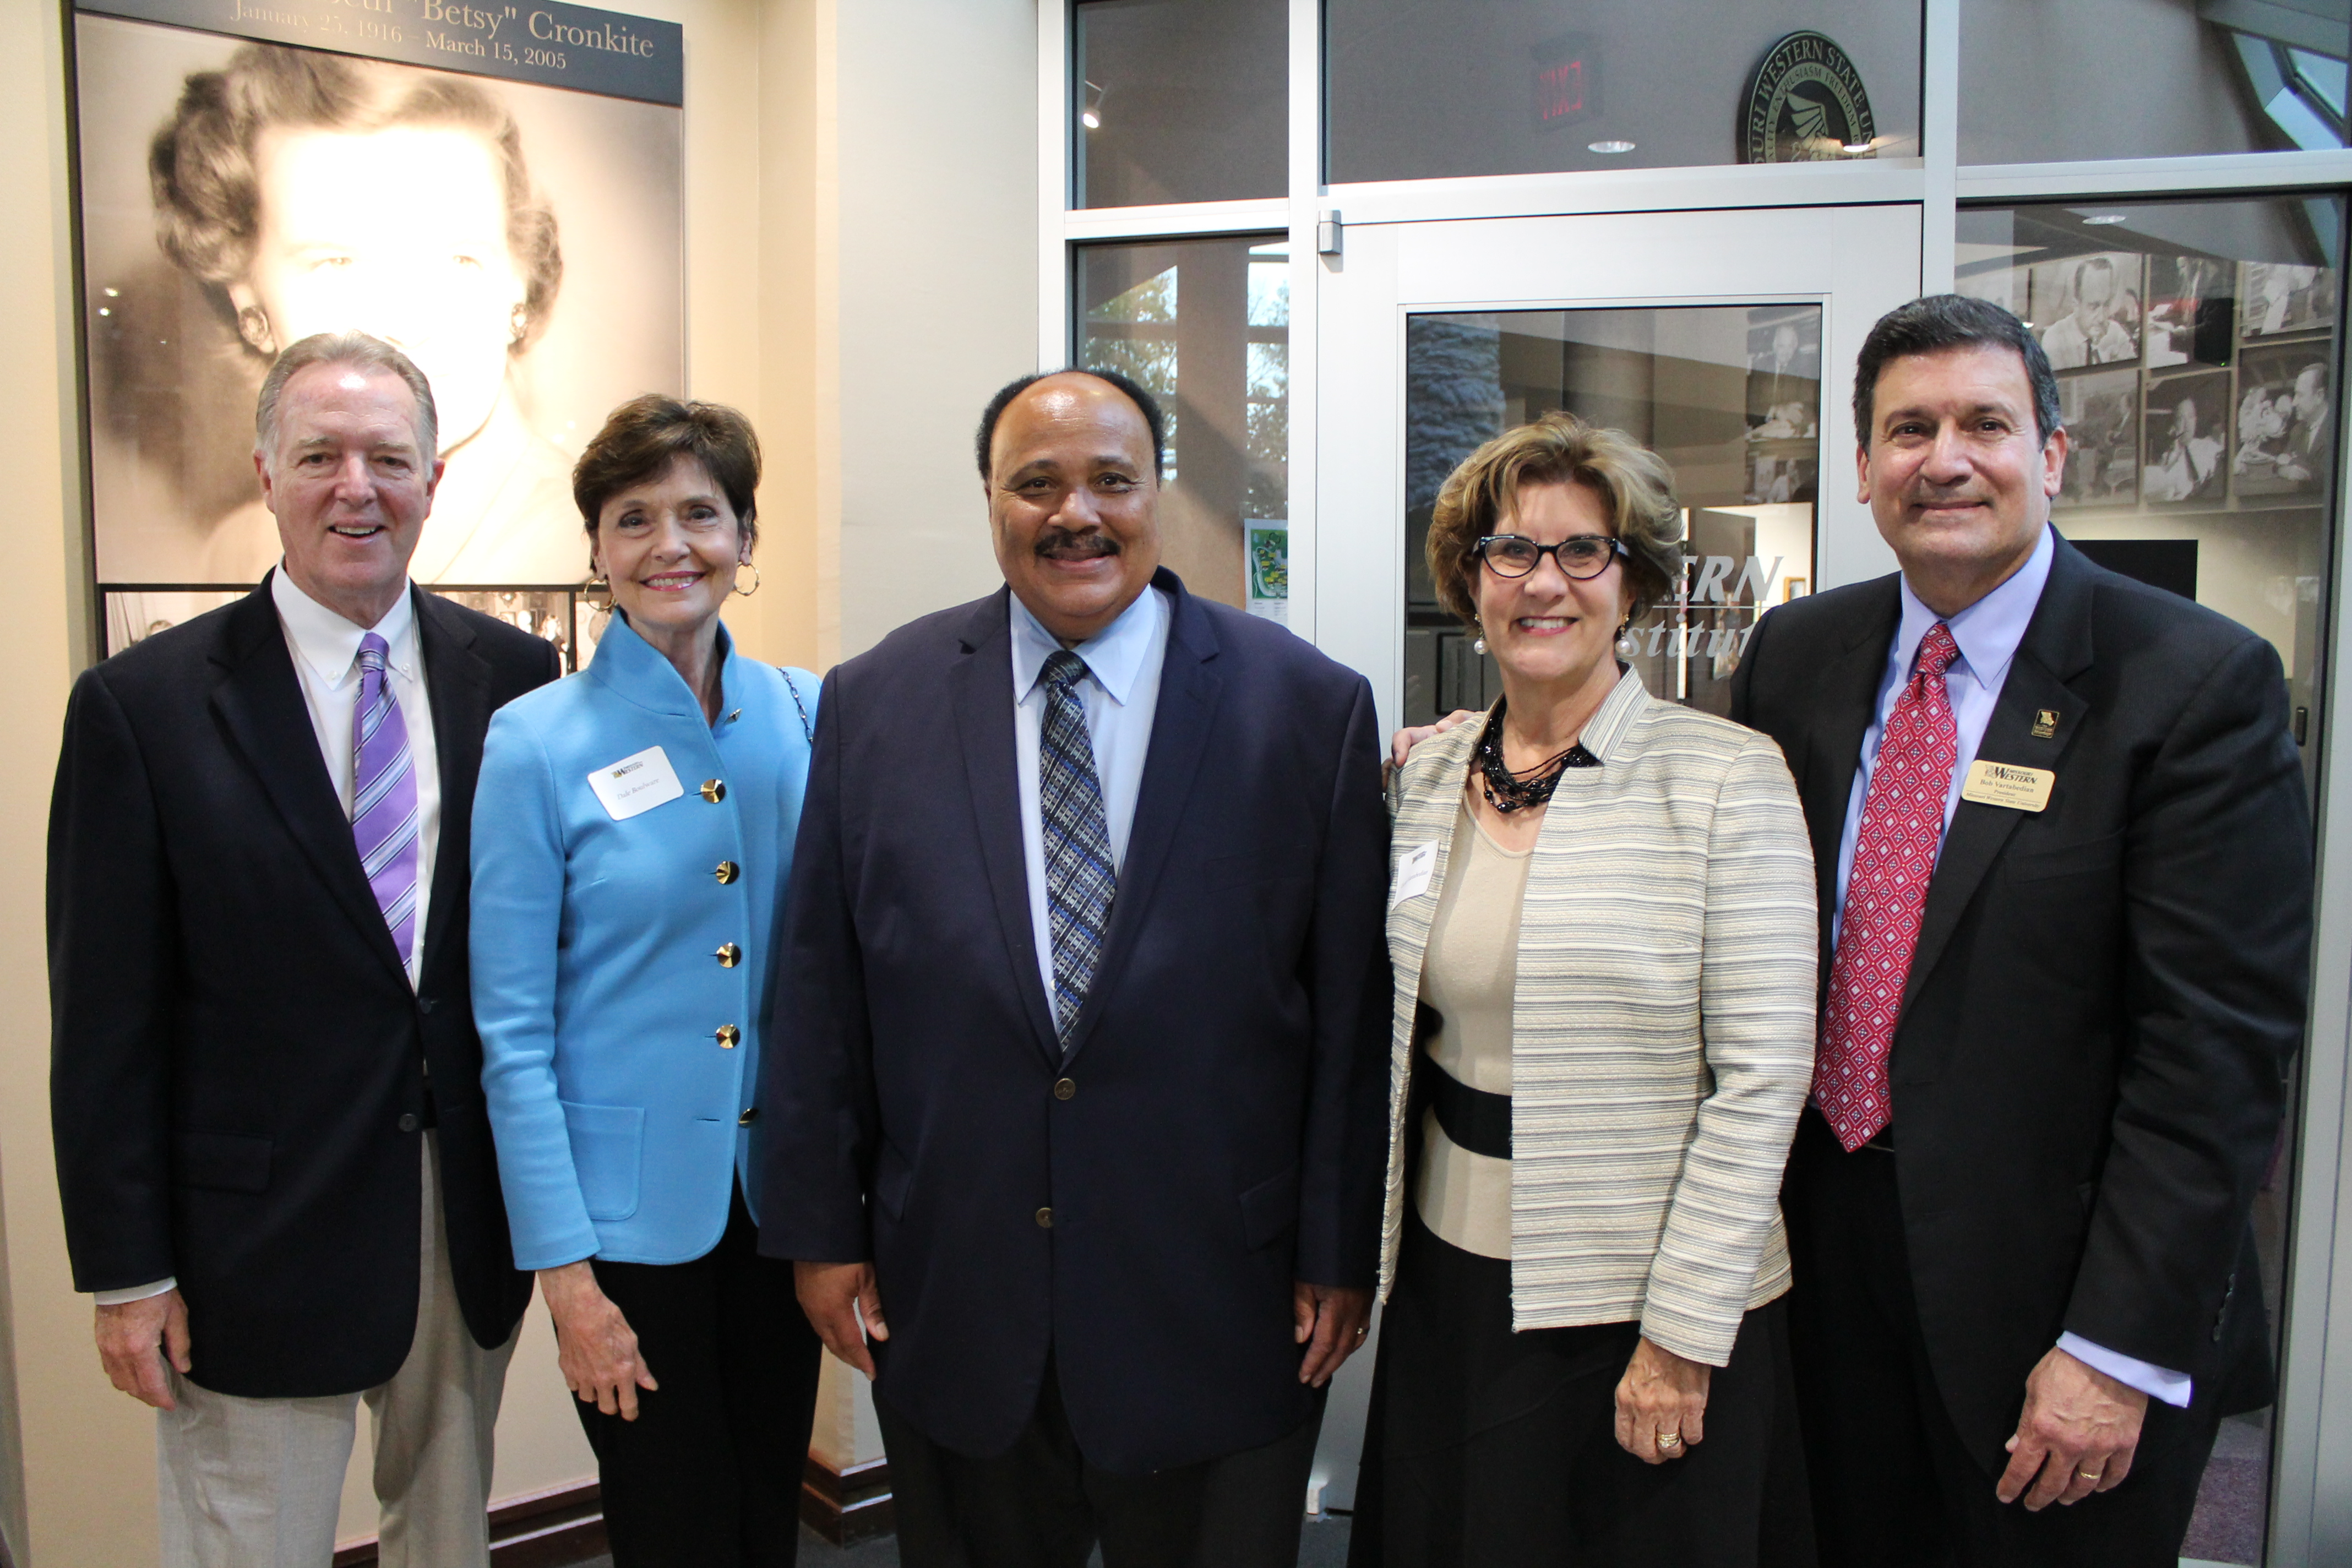 Dan and Dale Boulware, Martin Luther King III, Drs. Laurel and Bob Vartabedian.